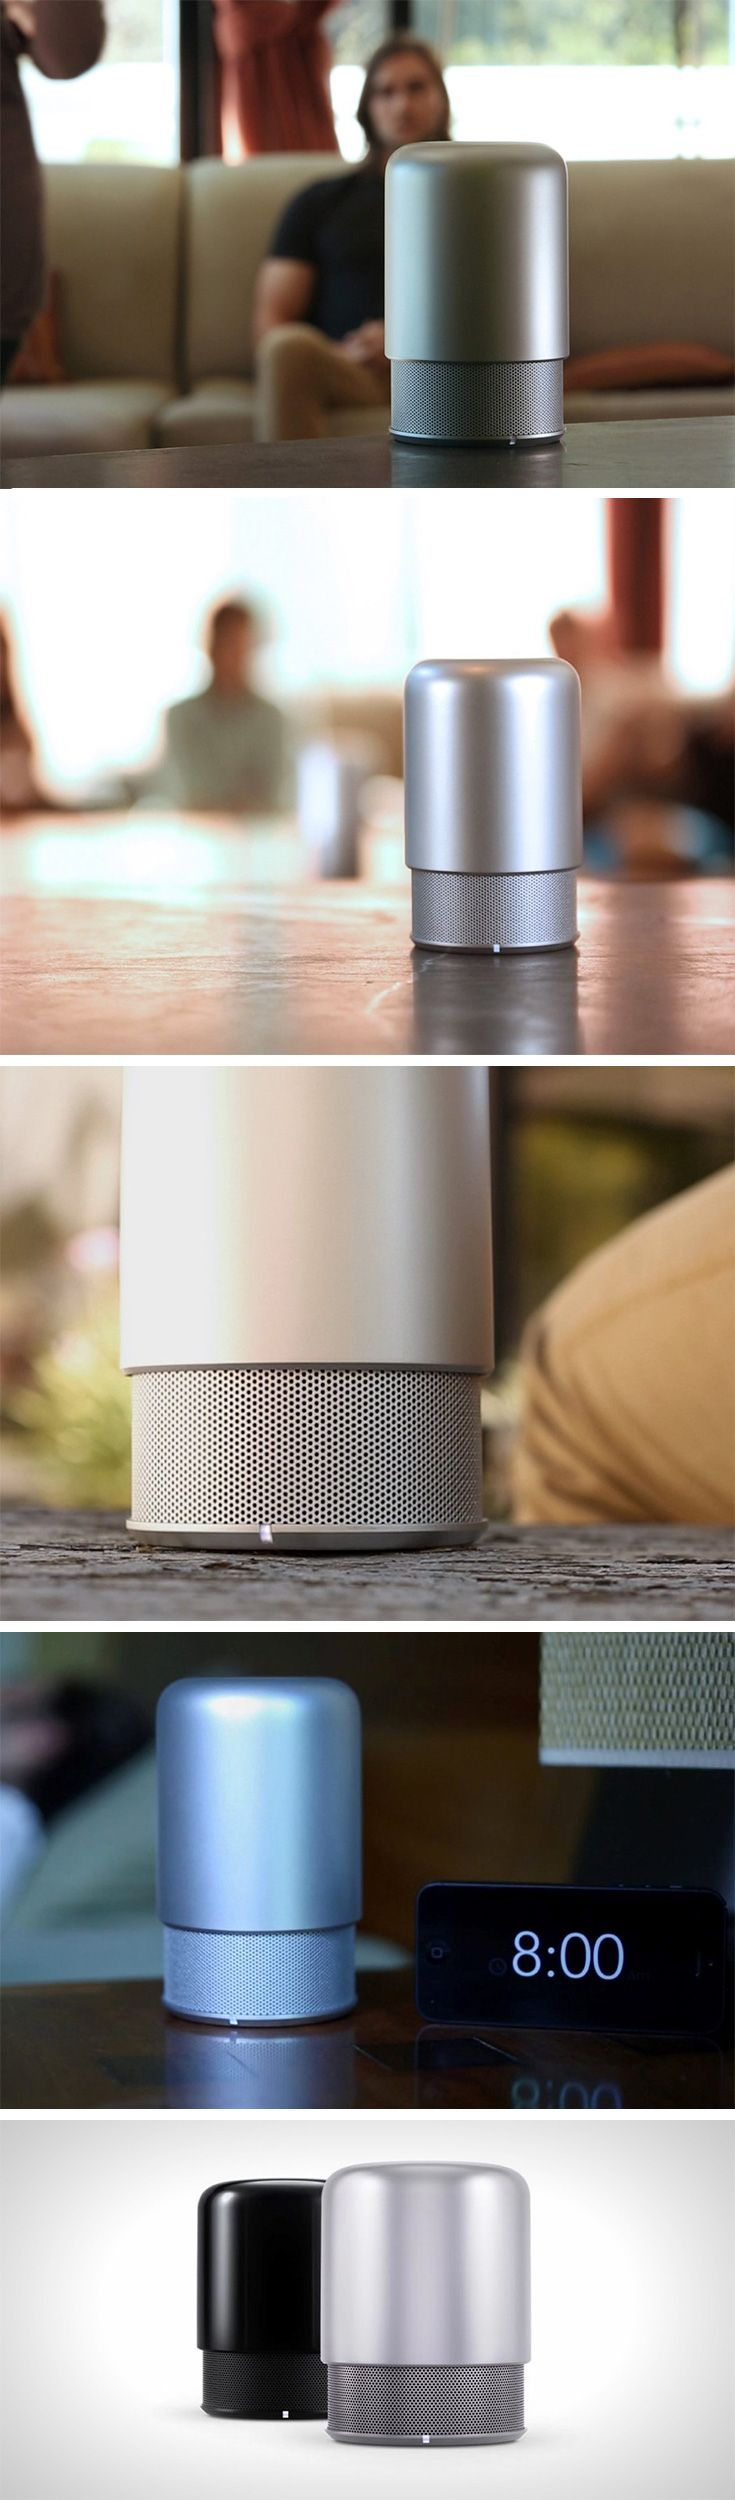 Designed with virtually no buttons (or any visible speaker at first), the HiddenRadio2 looks like a metal version of the Pokemon Diglett. To power it on, just place your finger on the capacitive touch enabled top and the metal housing dramatically lifts upwards to reveal a tiny yet versatile and powerful 360° speaker below. Buy Now!